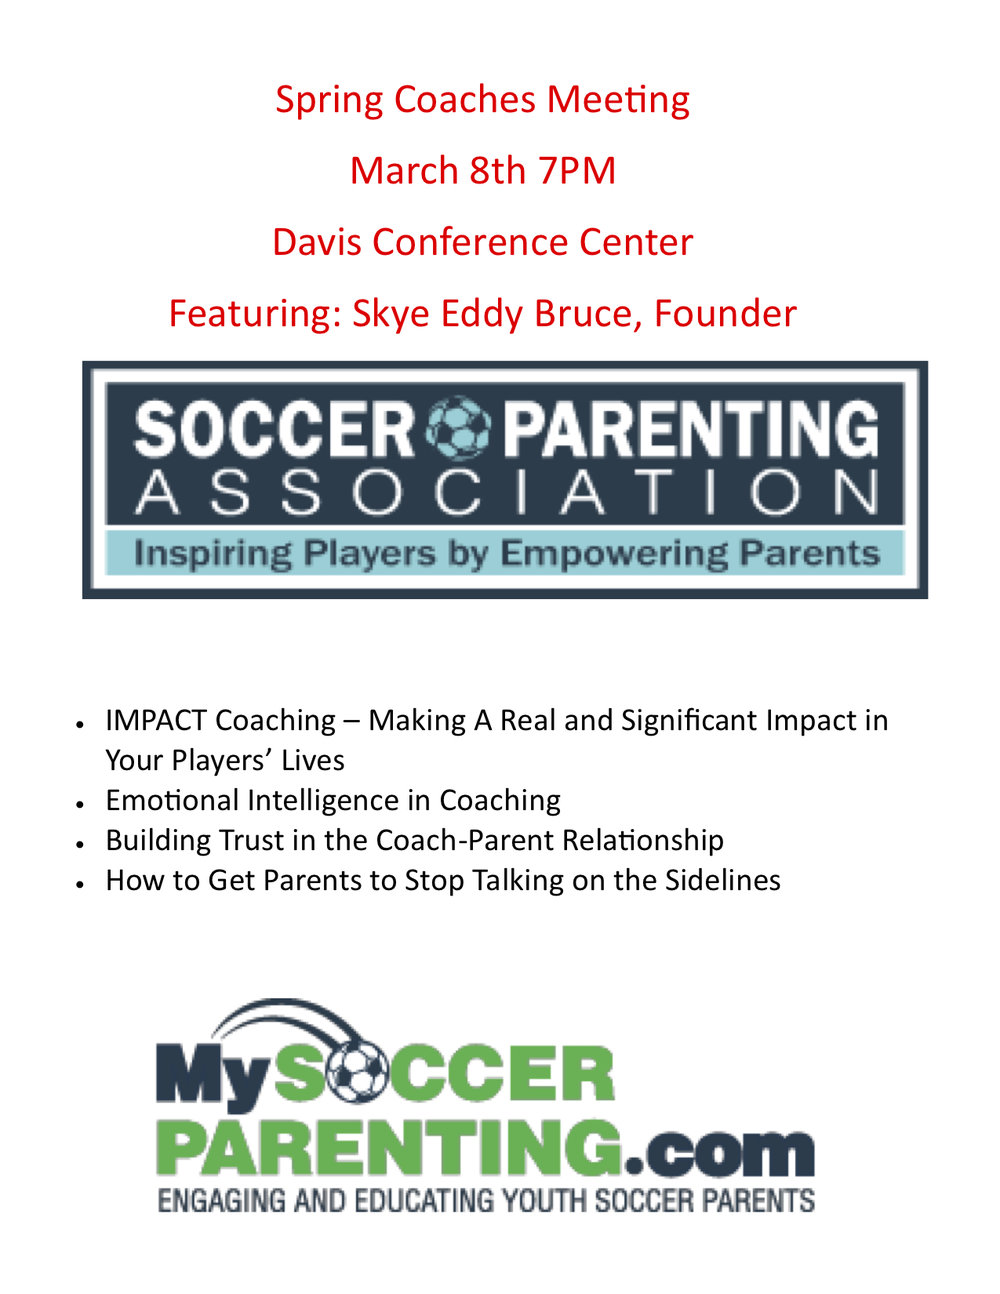 Coaches Meeting Flyer-2.jpg